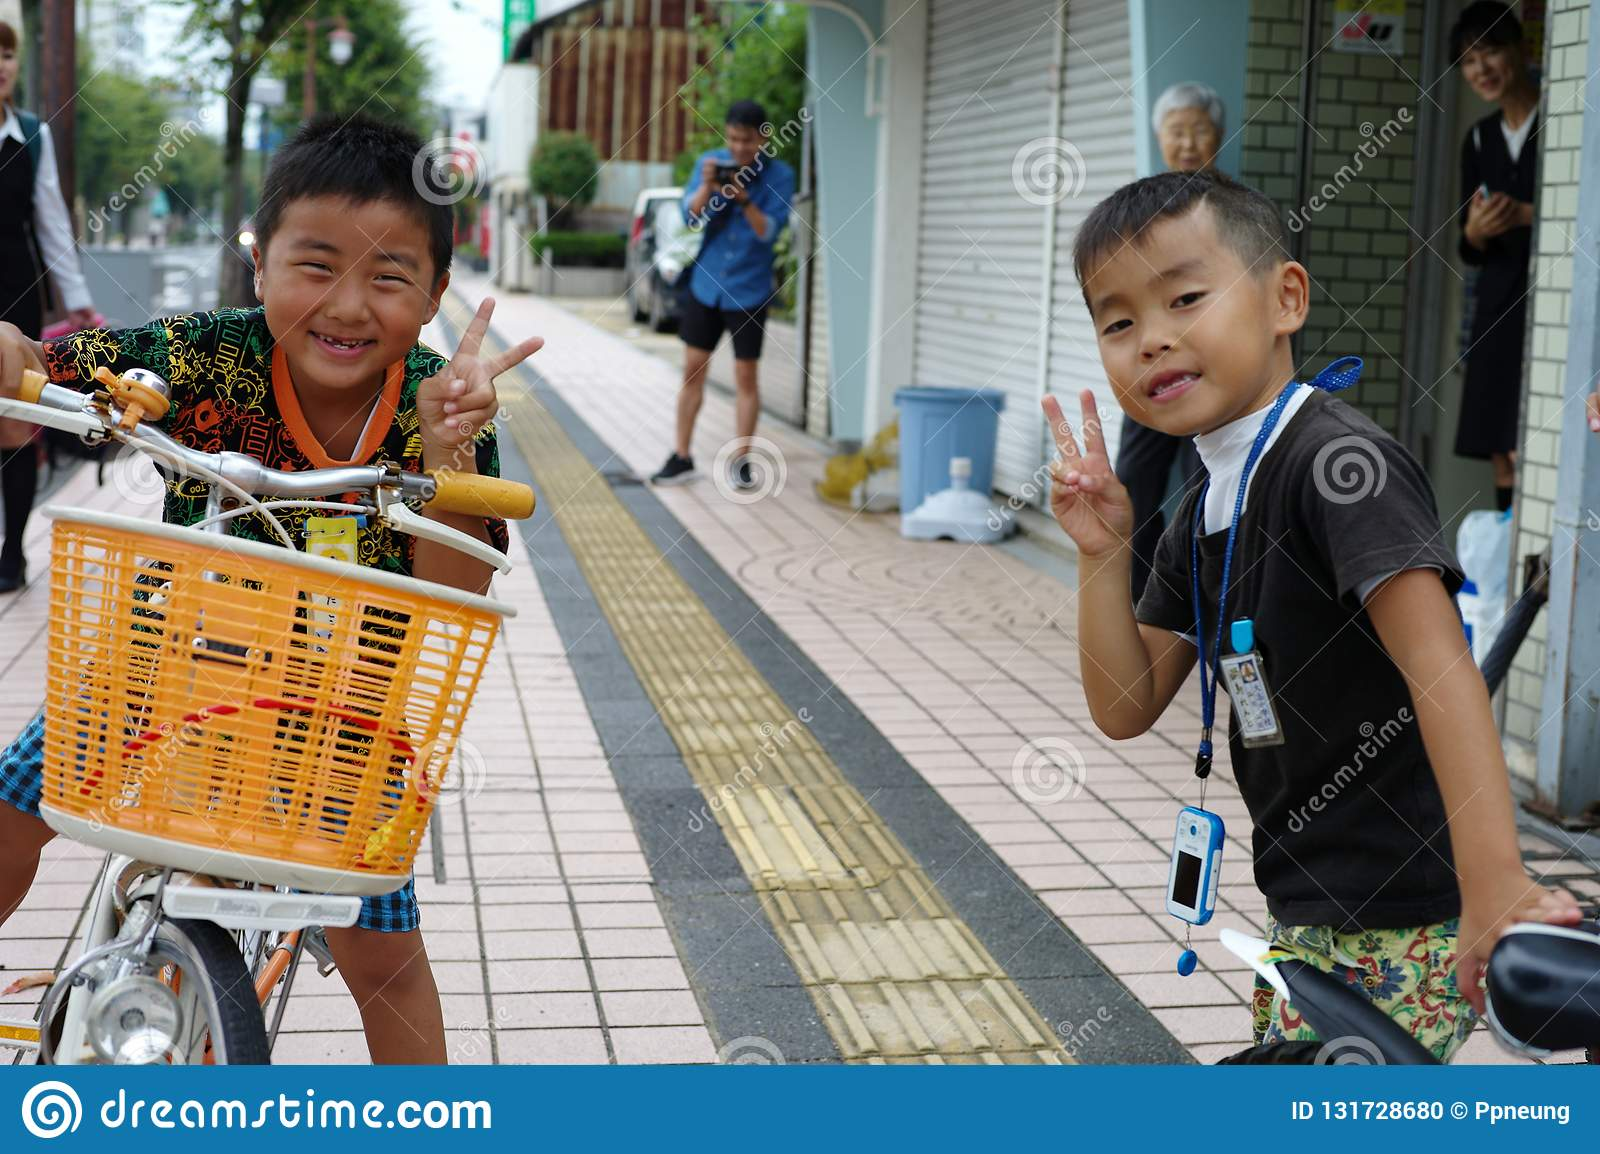 Saga, Japan:September 1,2018 - Portrait group of Japanese boys with their bicycles after school. Liefstyle of Japanese children in